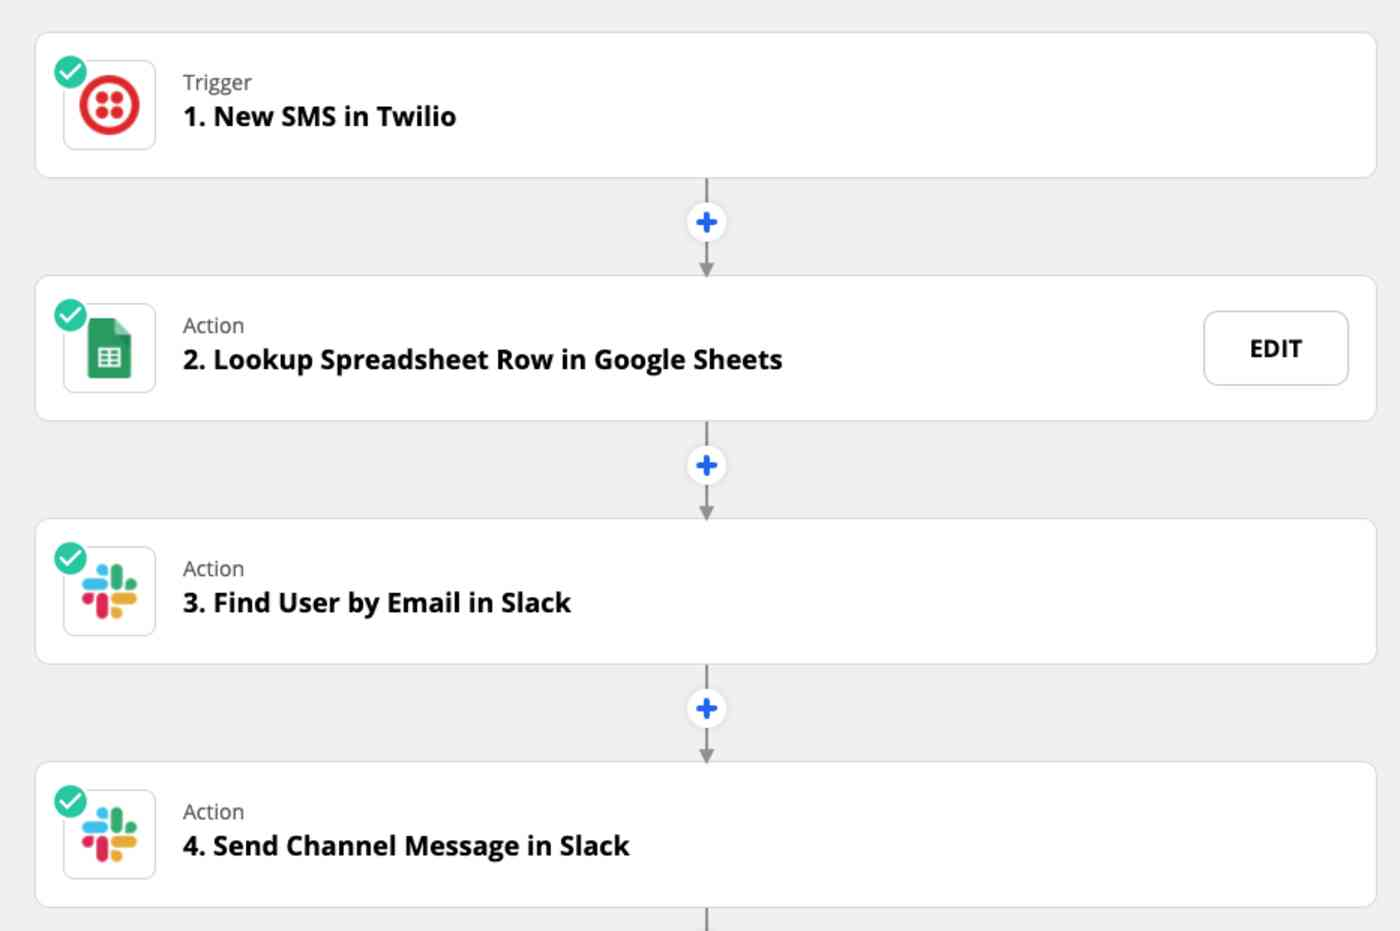 A screenshot of the steps in a Zap, starting with a new SMS being received in Twilio as the trigger, and followed by looking up a spreadsheet row in Google Sheets, finding a user by email in Slack, and sending a channel message in Slack.